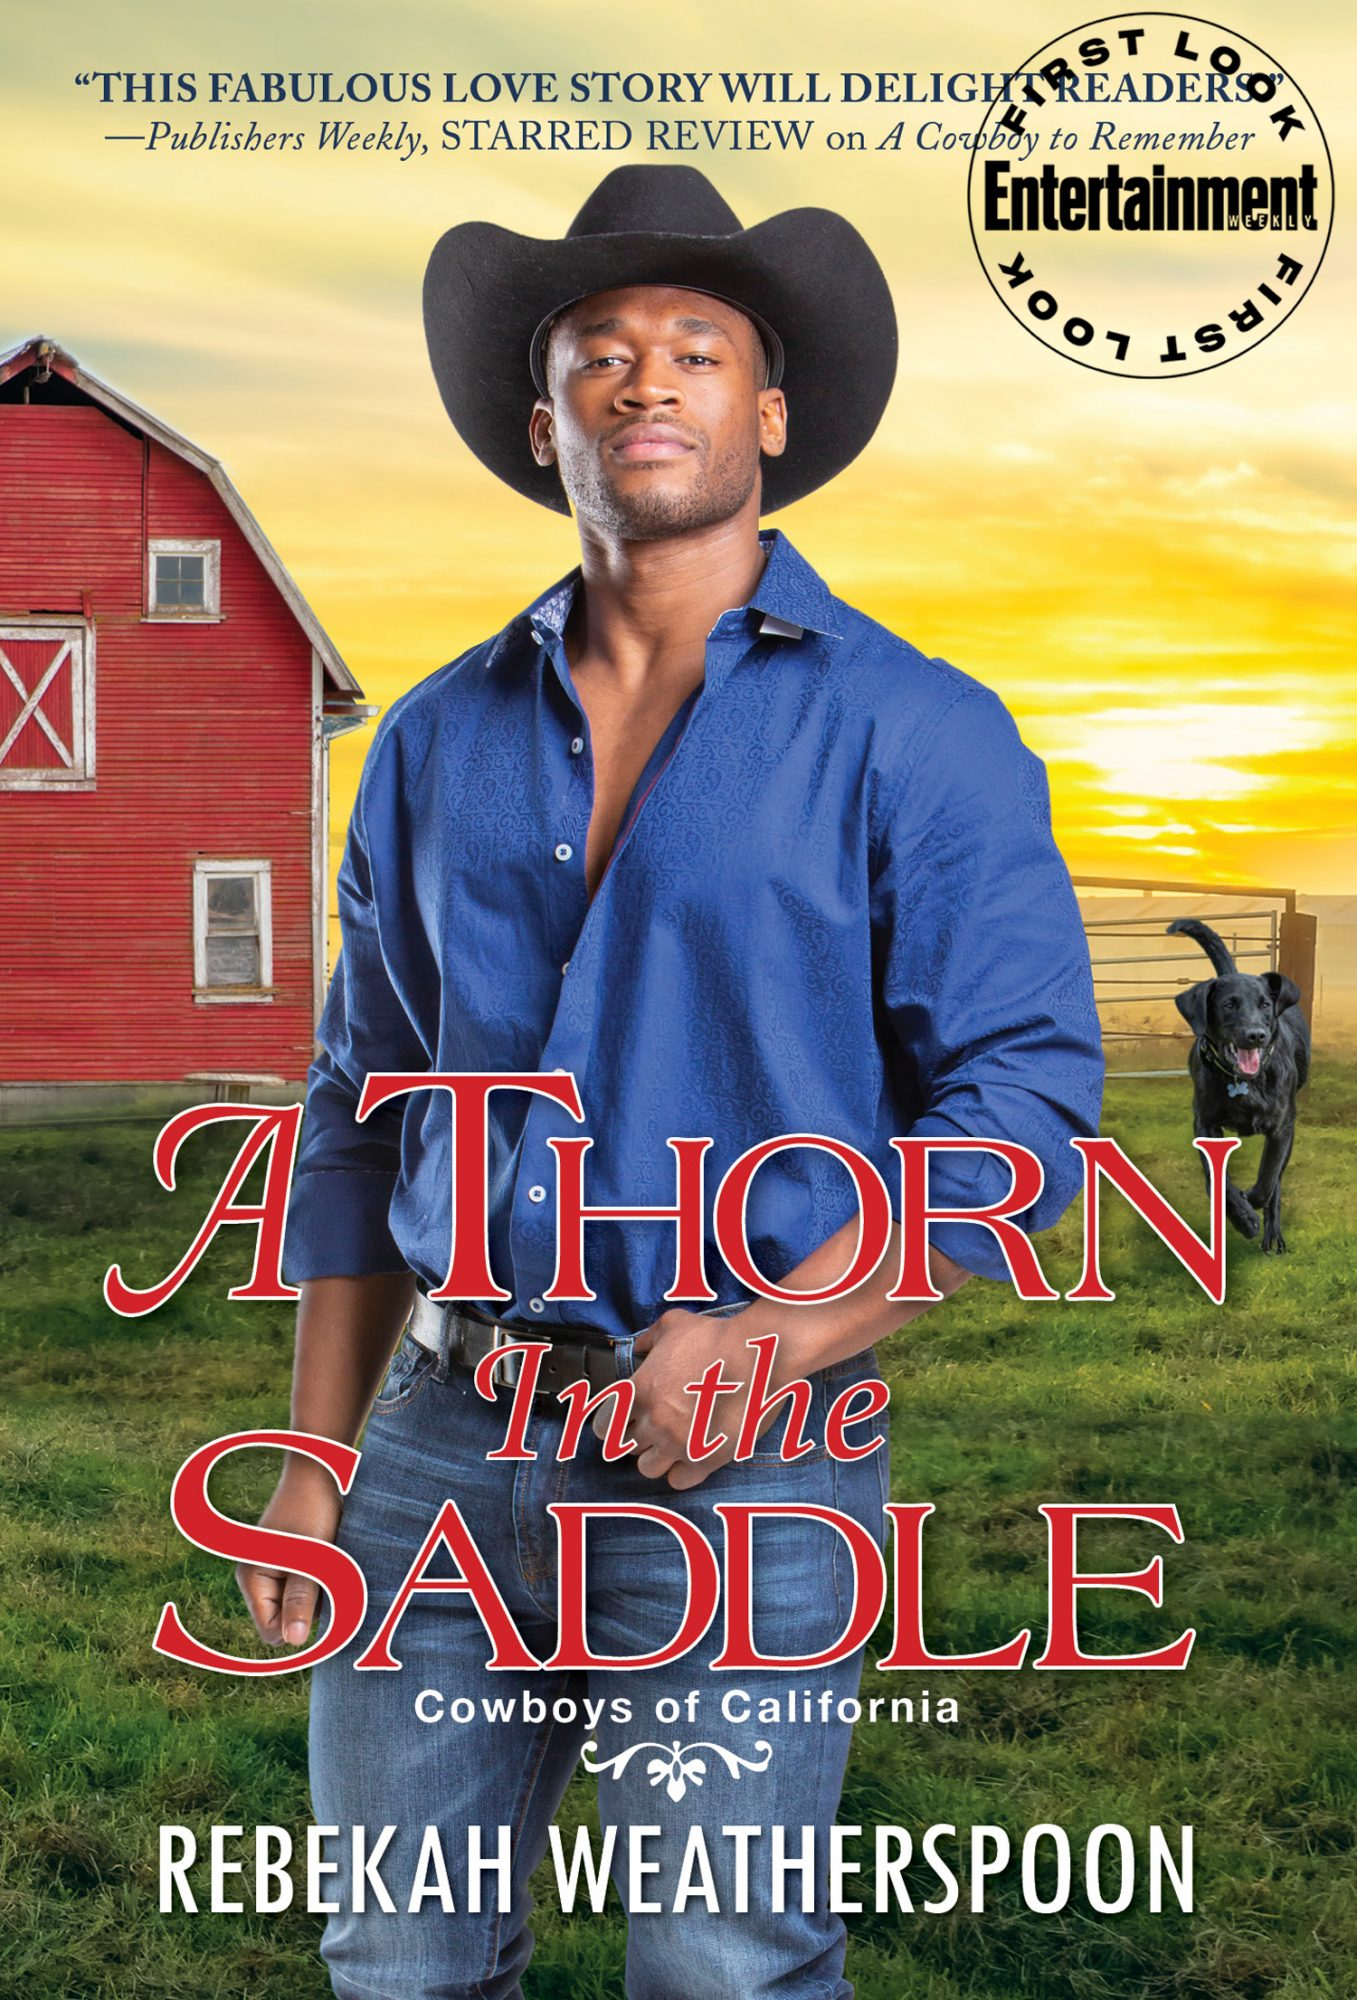 A Thorn in the Saddle Book by Rebekah Weatherspoon